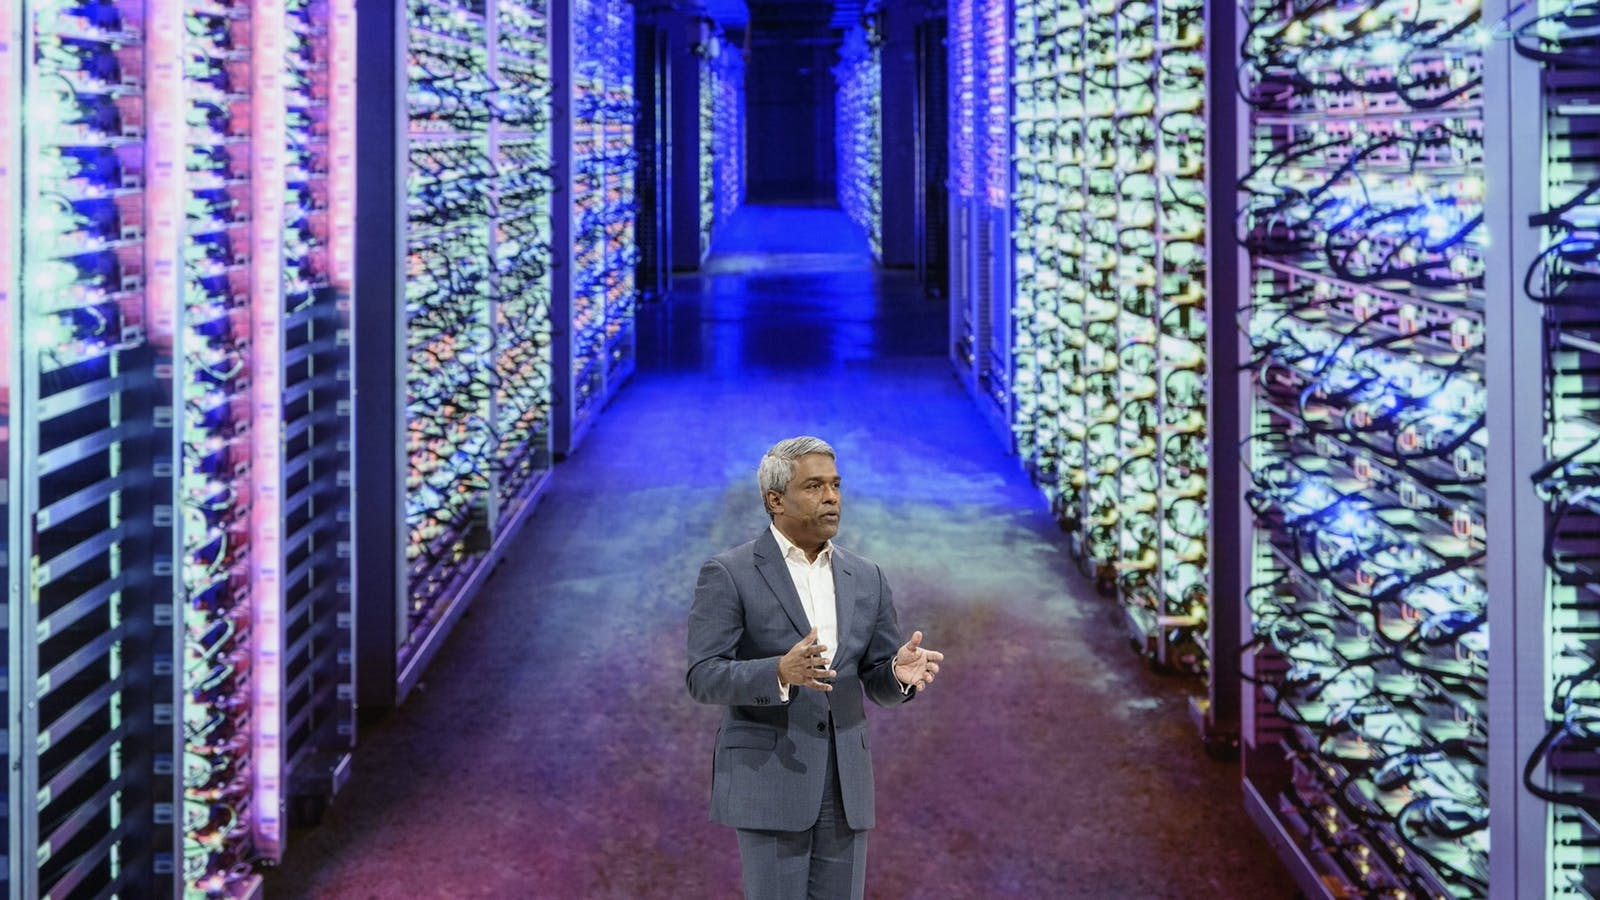 Google Cloud CEO Thomas Kurian at an event in 2019. Photo by Bloomberg